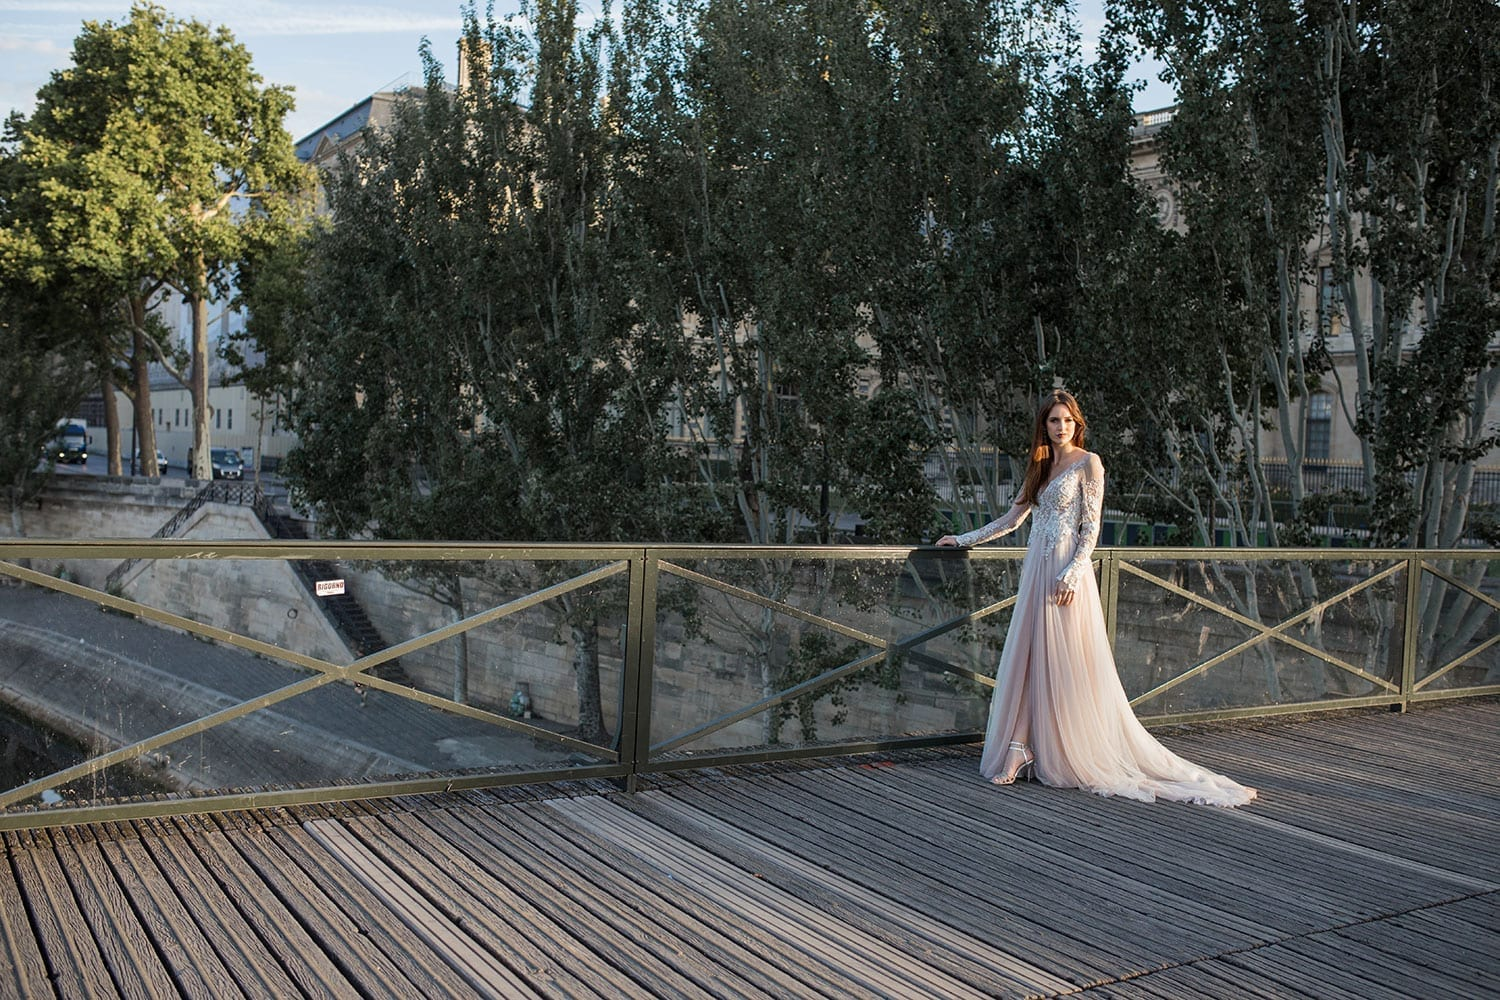 Model wearing Vinka Design Suri Wedding Dress, a stunning silver beaded lace wedding dress with sheer long sleeves and no back. The skirt is made with layers of dreamy tulle and silk with a side front split. Worn on boardwalk in Paris.